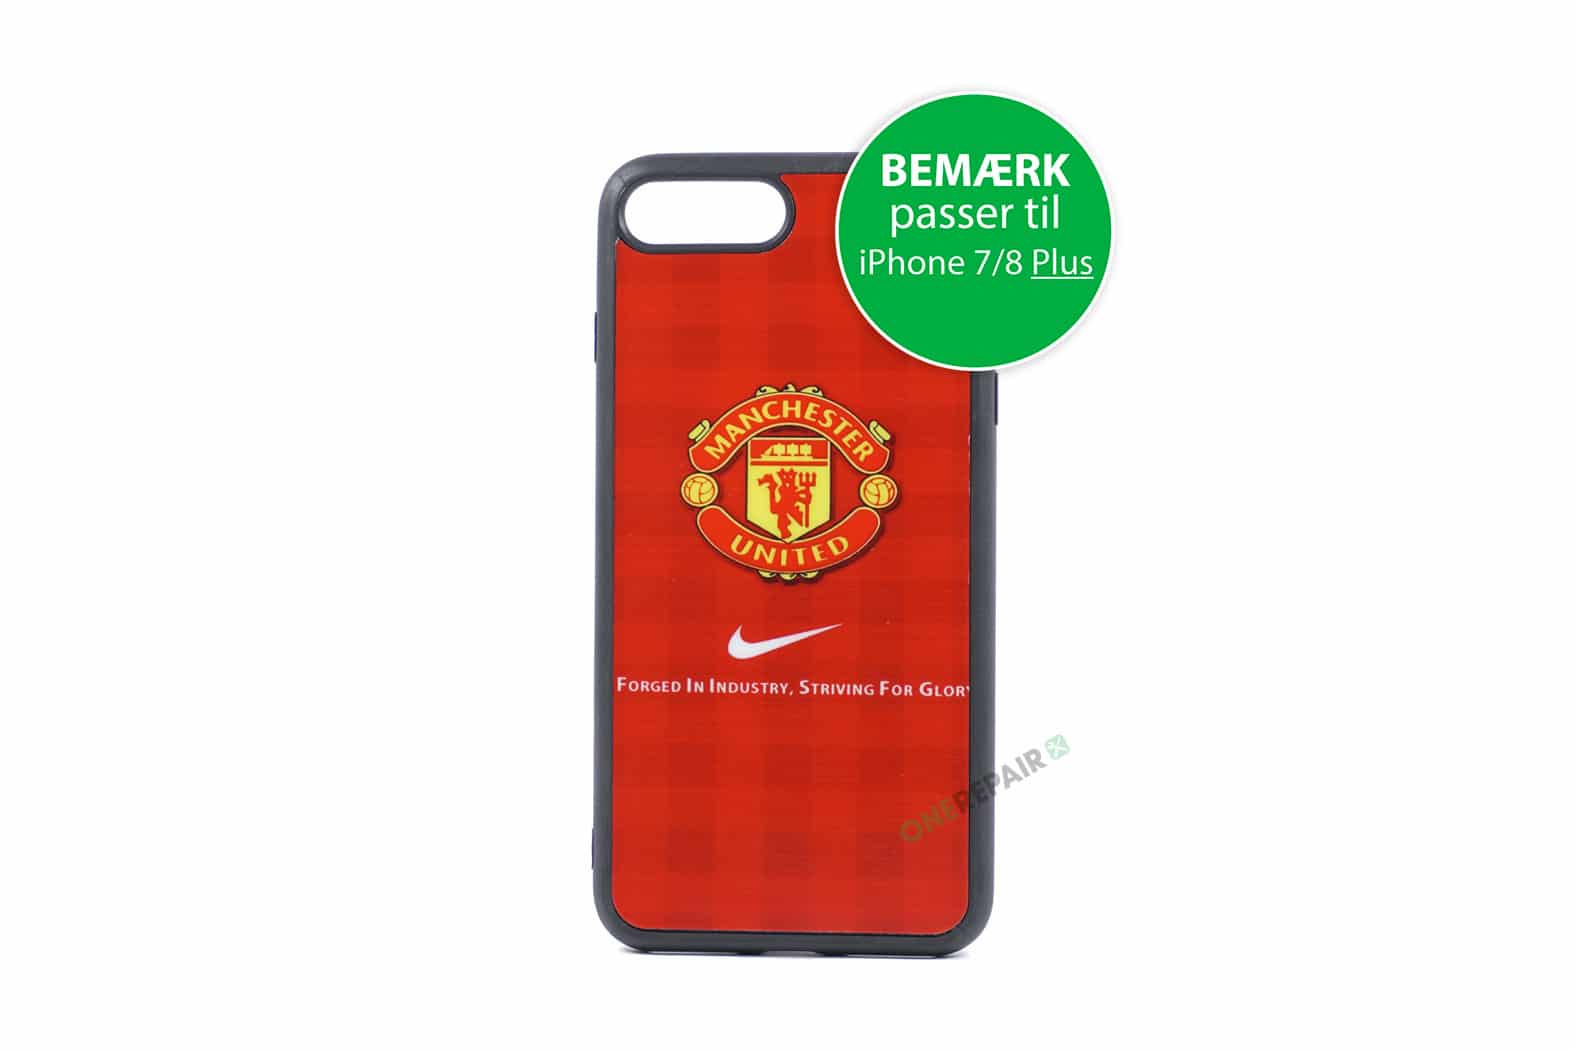 350859_iPhone_7+_8+_Plus_Fodbold_Manchester_United_MCU_Red_Cover_Roed_OneRepair_WM_00001